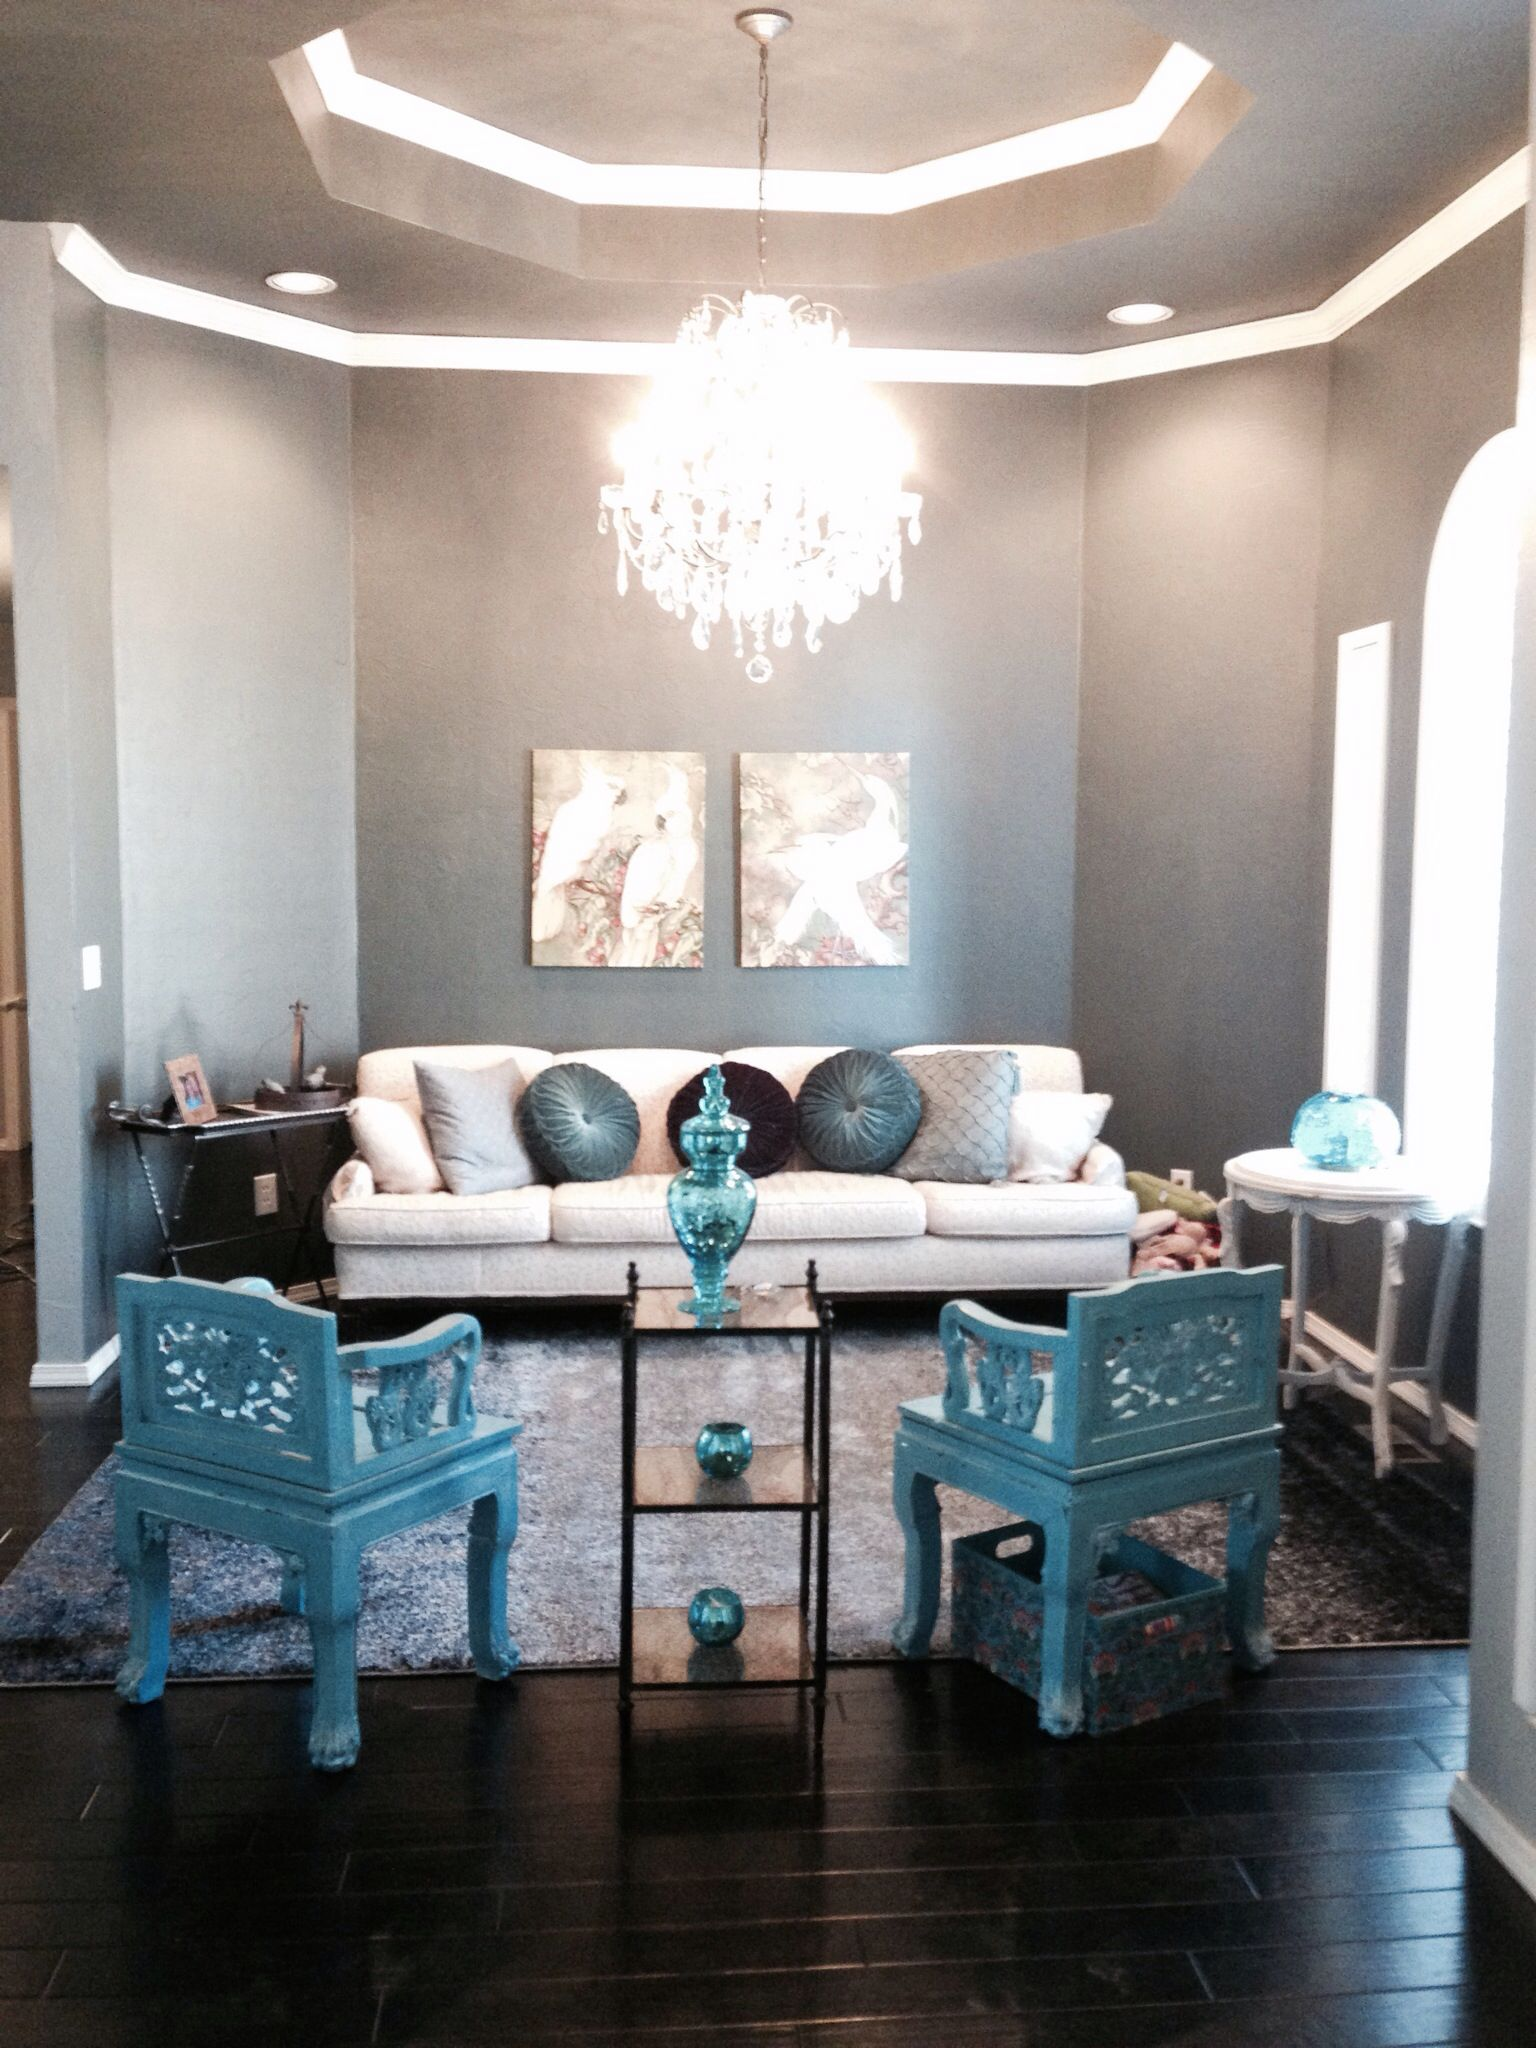 blue gray turquoise living room #livingroomideas | living room